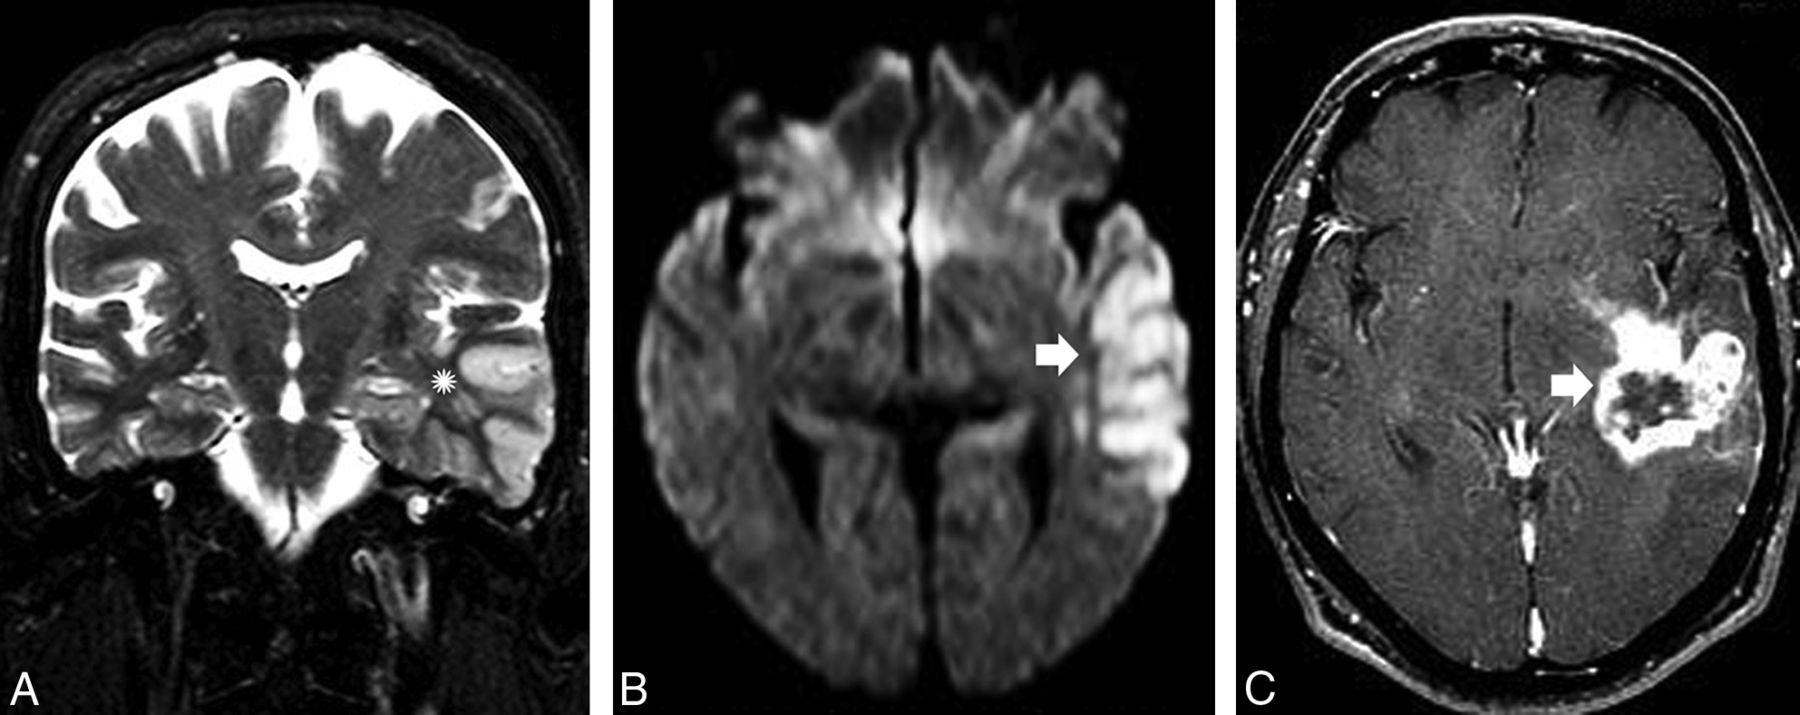 Recognizing Autoimmune-Mediated Encephalitis in the